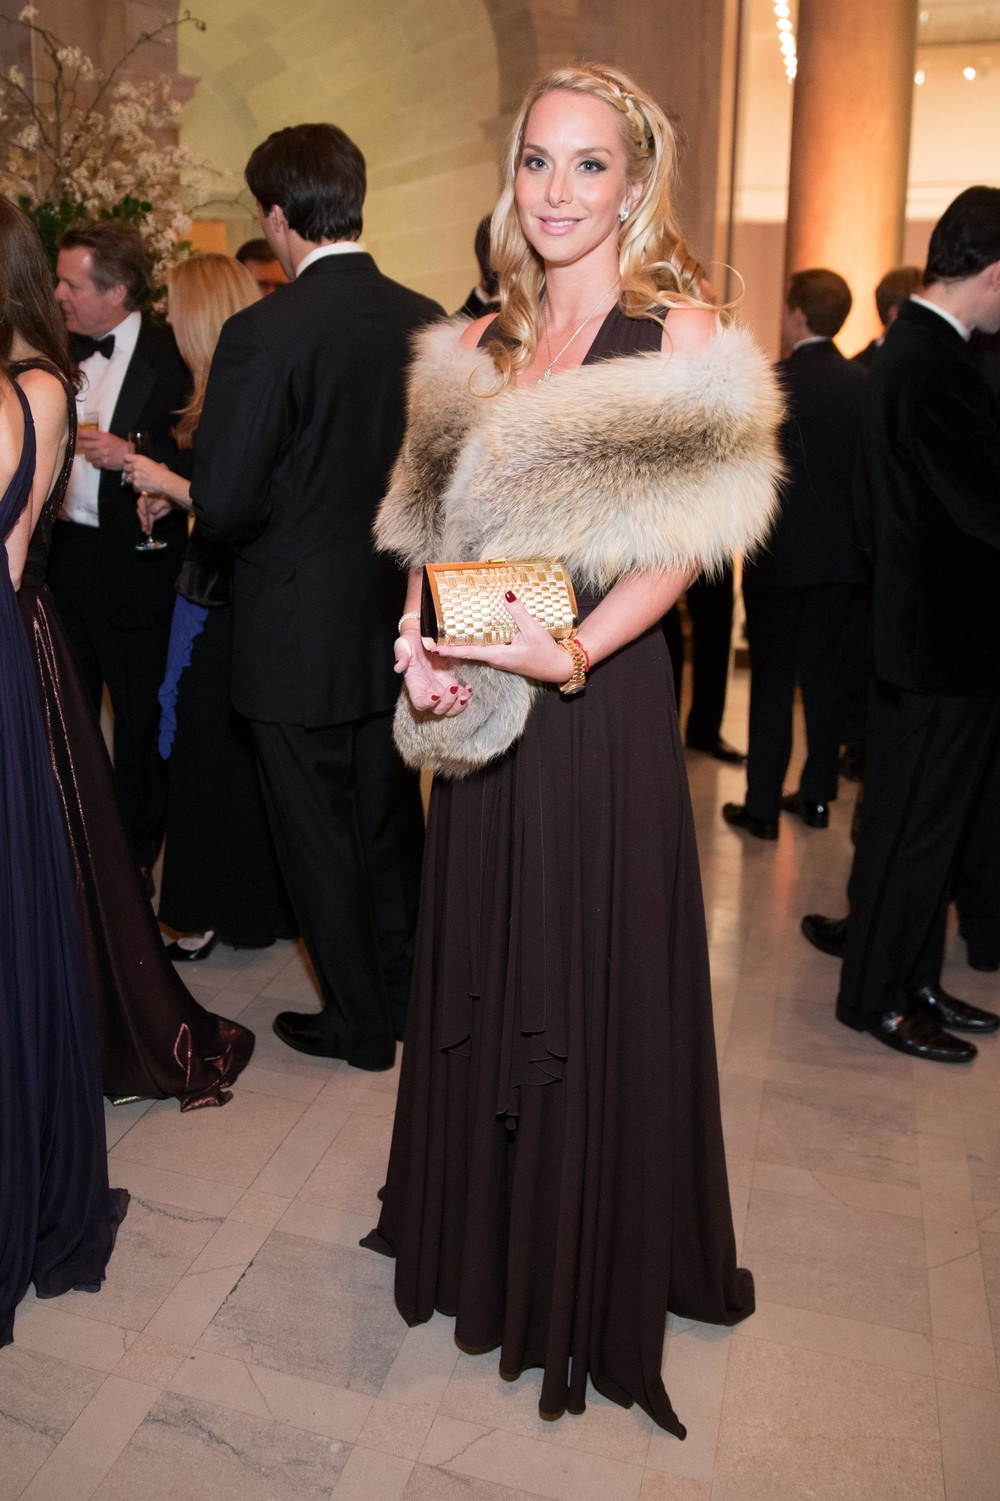 Christina Getty  at the Salvatore Ferragamo 2014 Mid-Winter gala to benefit the Fine Arts Museums, San Francisco, wearing Salvatore Ferragamo